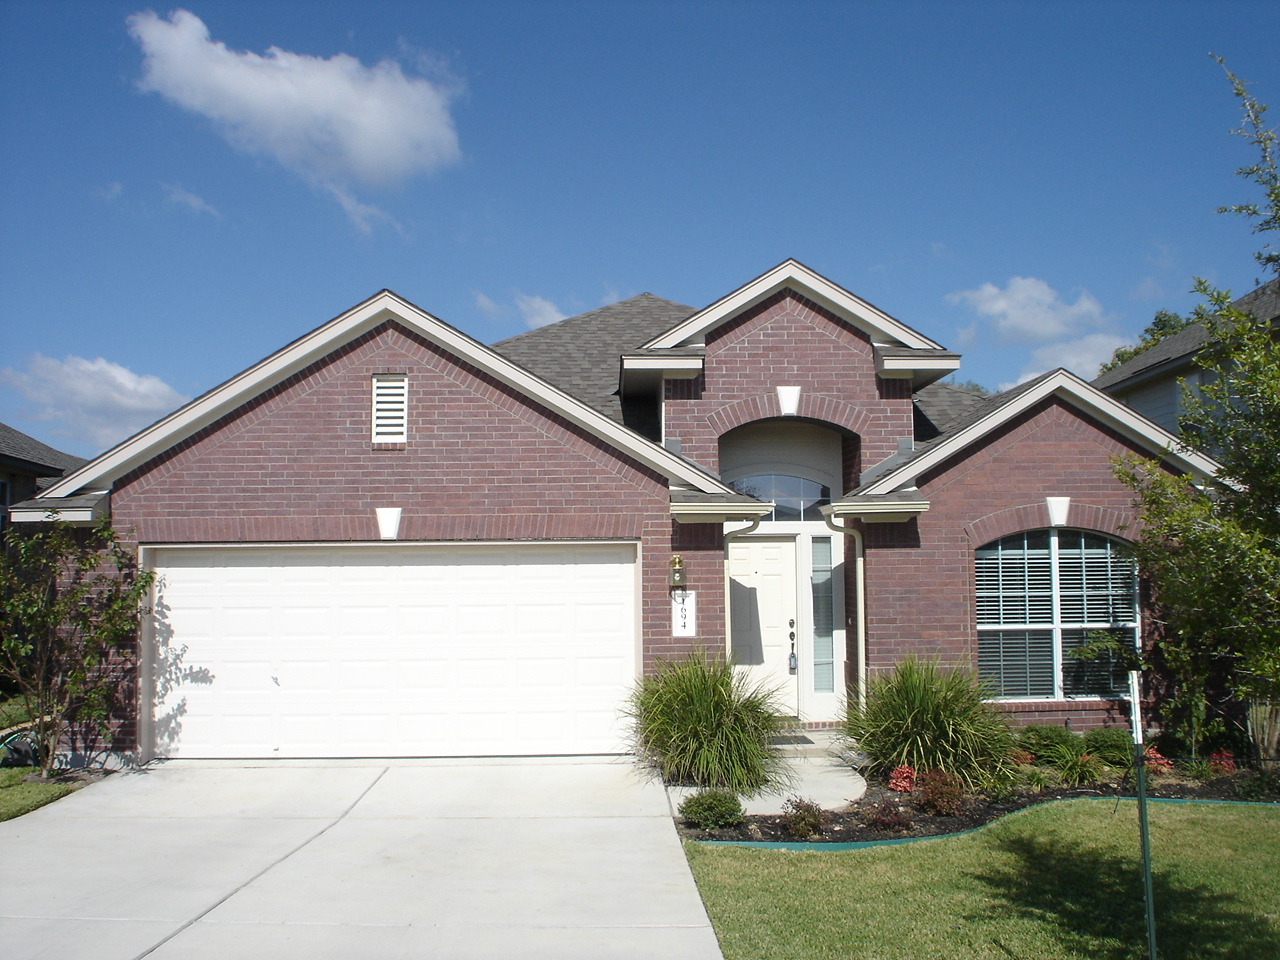 Featured Home At Teravista In Round Rock